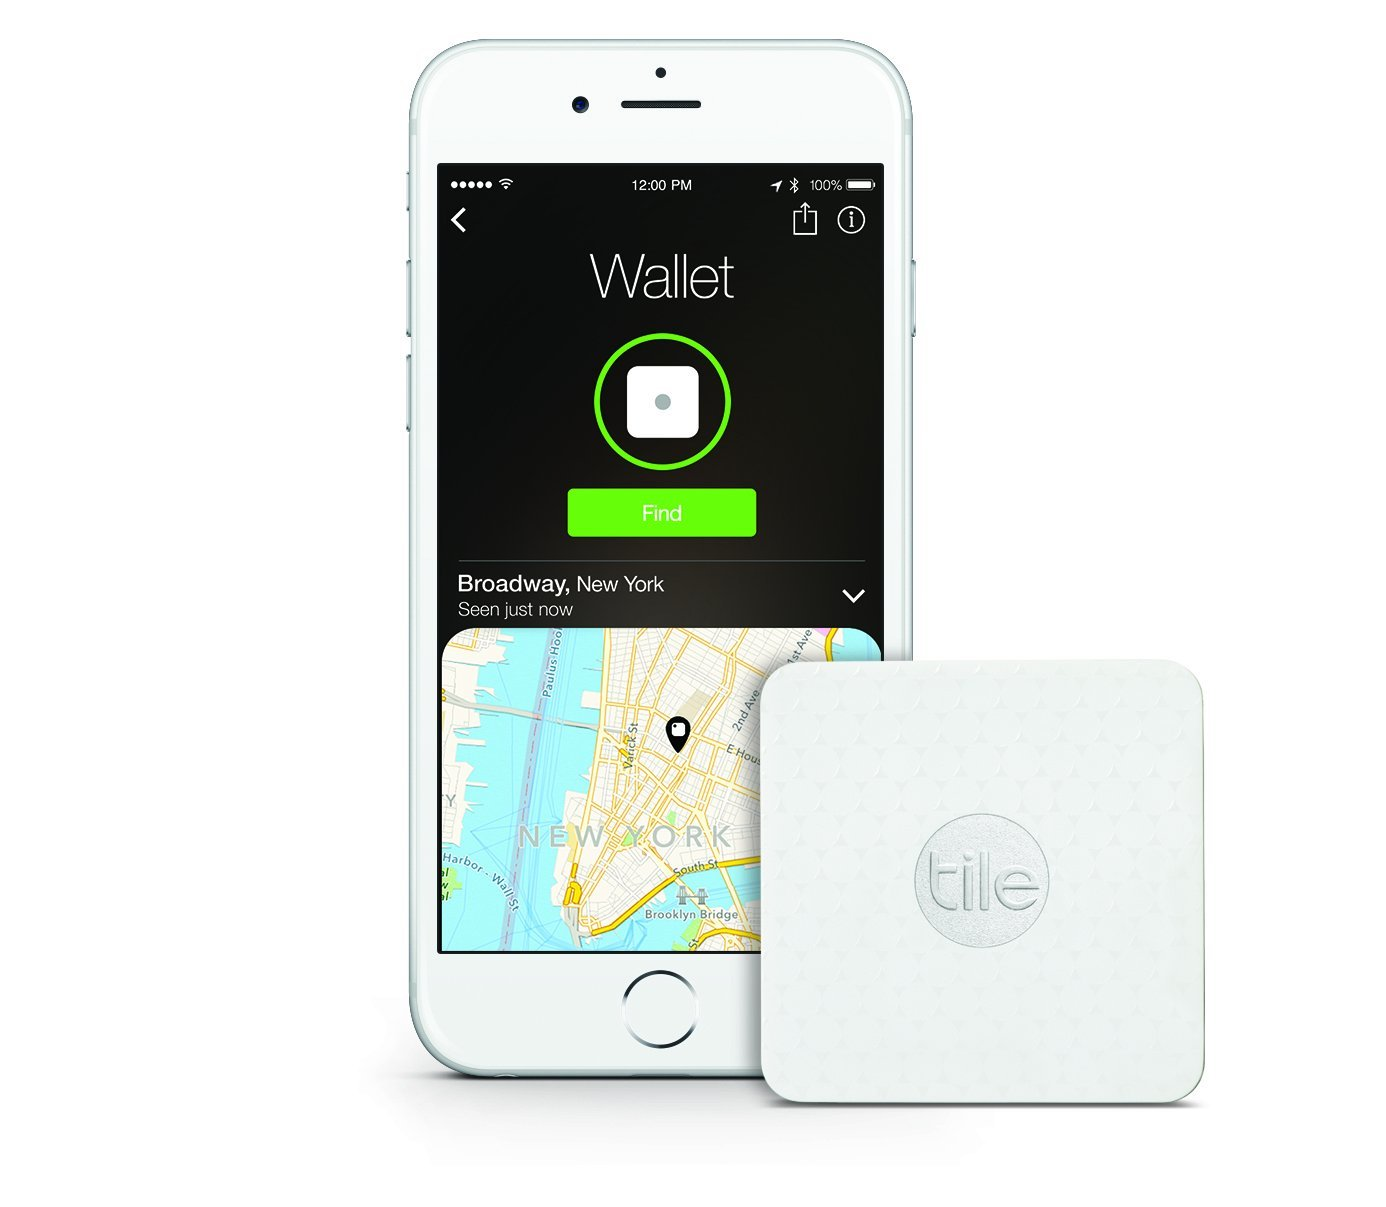 tile-slim-phone-finder